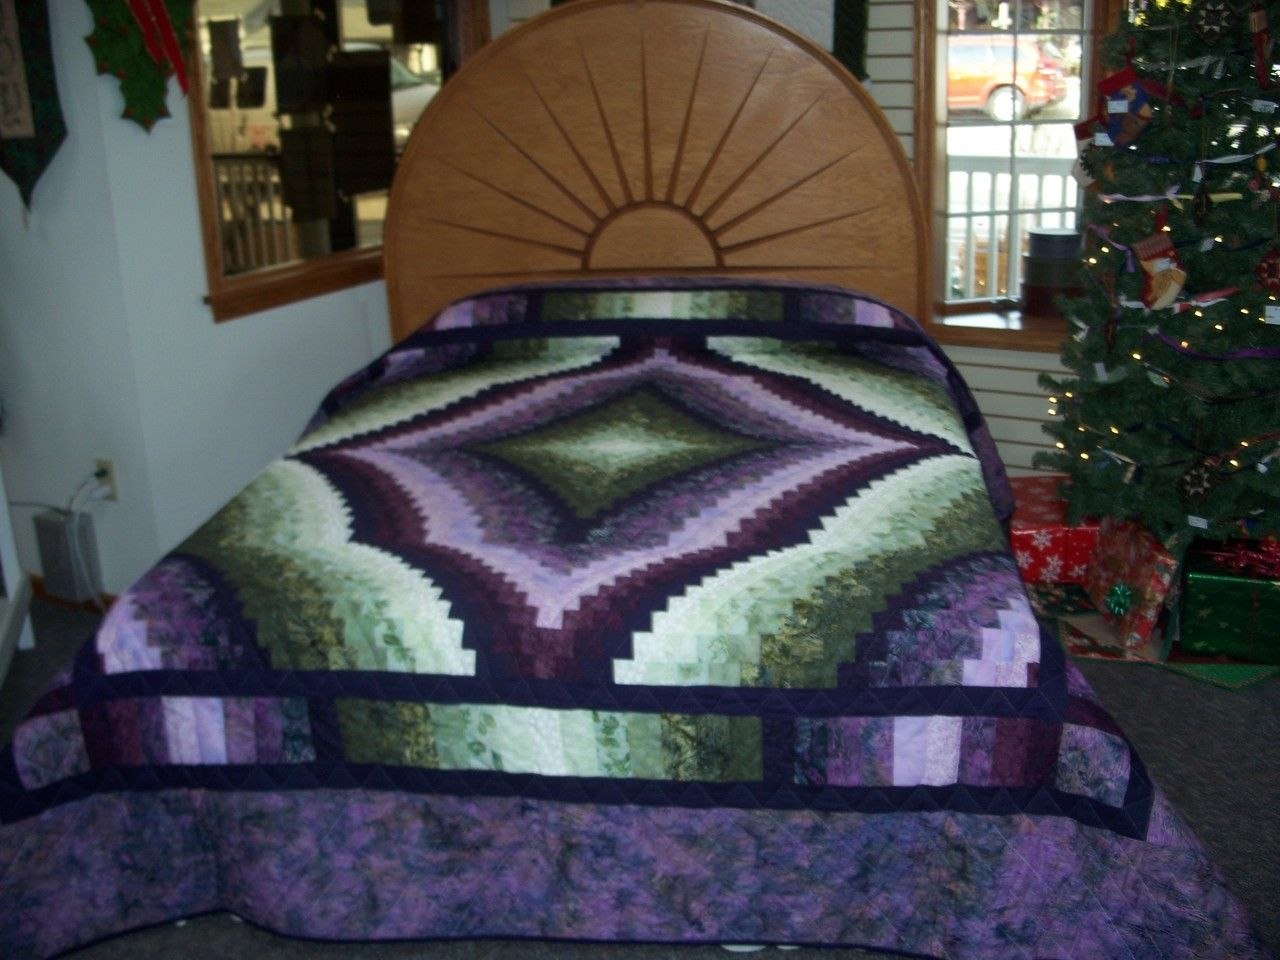 QUICK TRIP Quilt in Purple and Green | Helping Hands Quilt Shop in ... : quilt shops ohio - Adamdwight.com